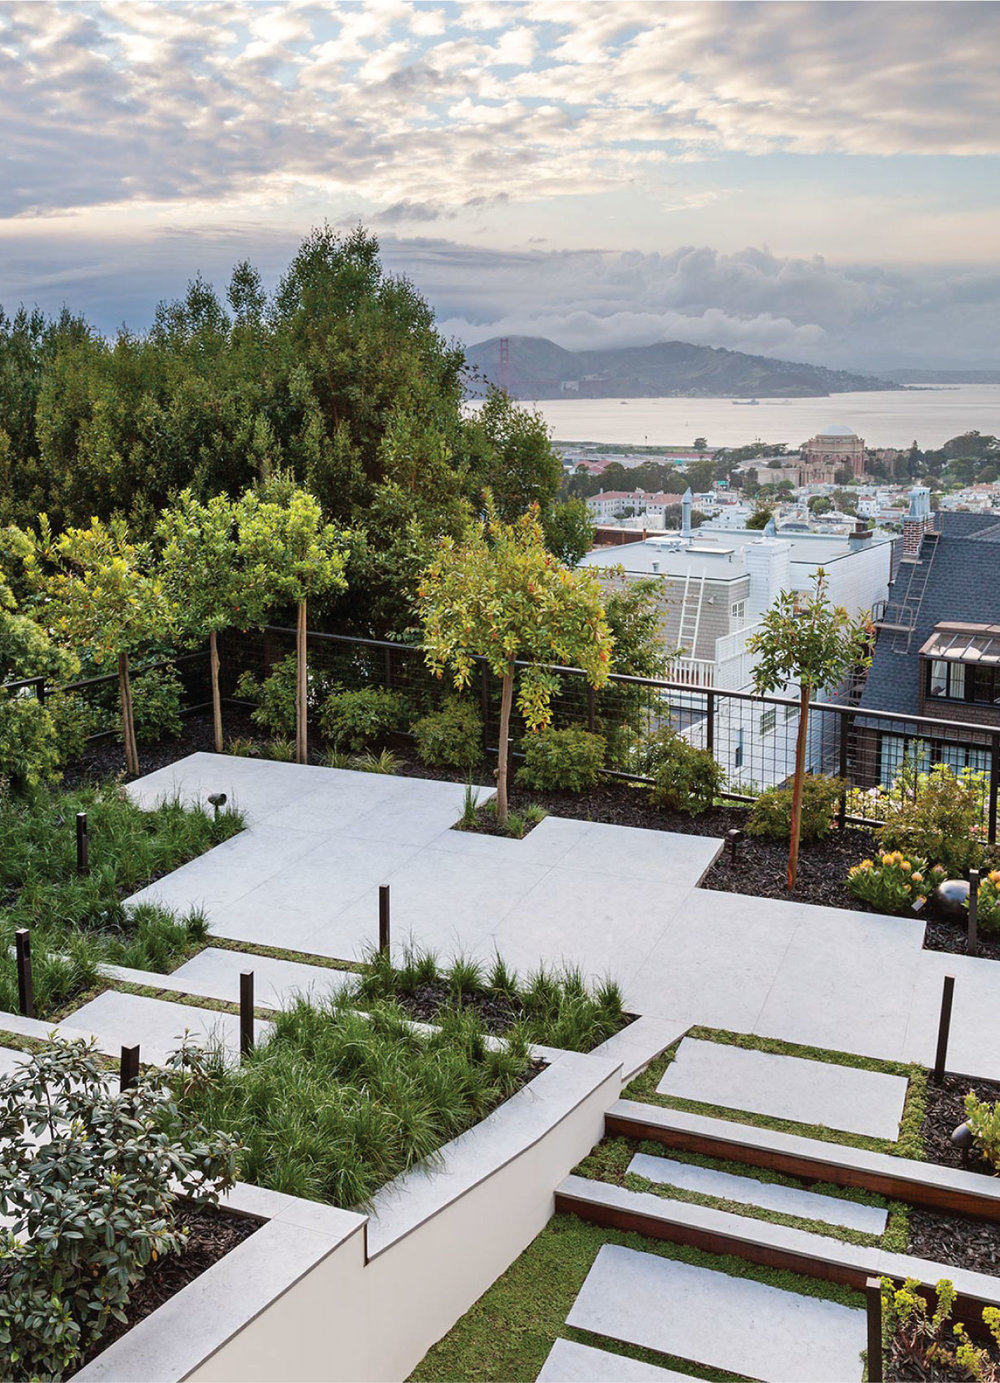 The view from the balcony towards the Palace of Fine Arts and across the bay is enhanced by the garden geometry.